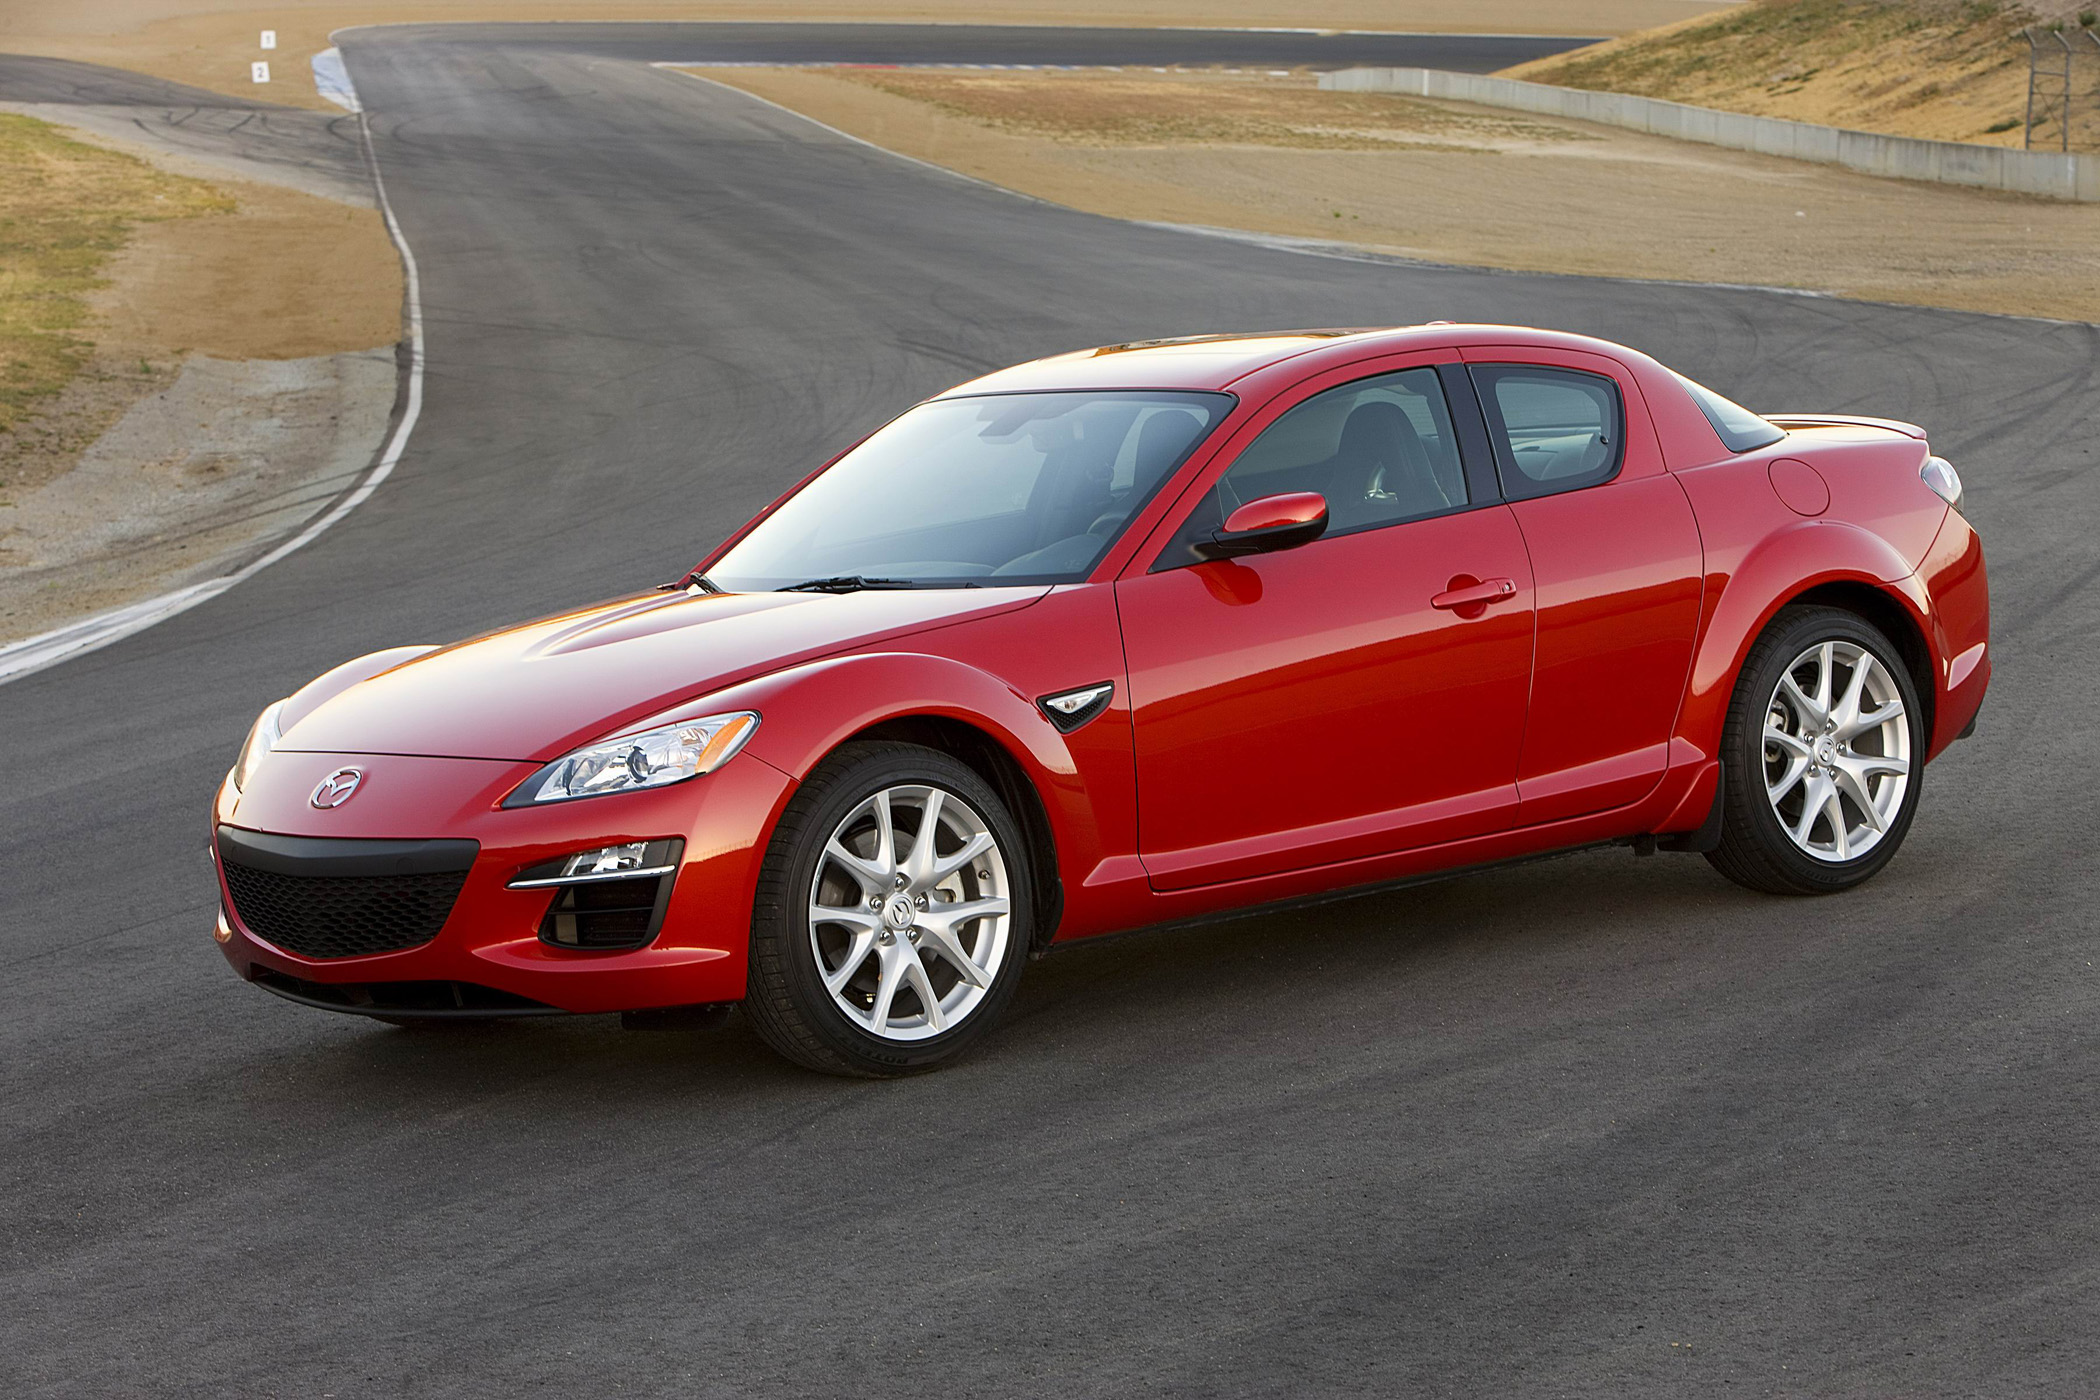 The Rx 8 Is Only Production Car To Use Rotary Engine A Design Initiated By German Felix El That S Kept Mazda Engineers Peculiarly Fascinated